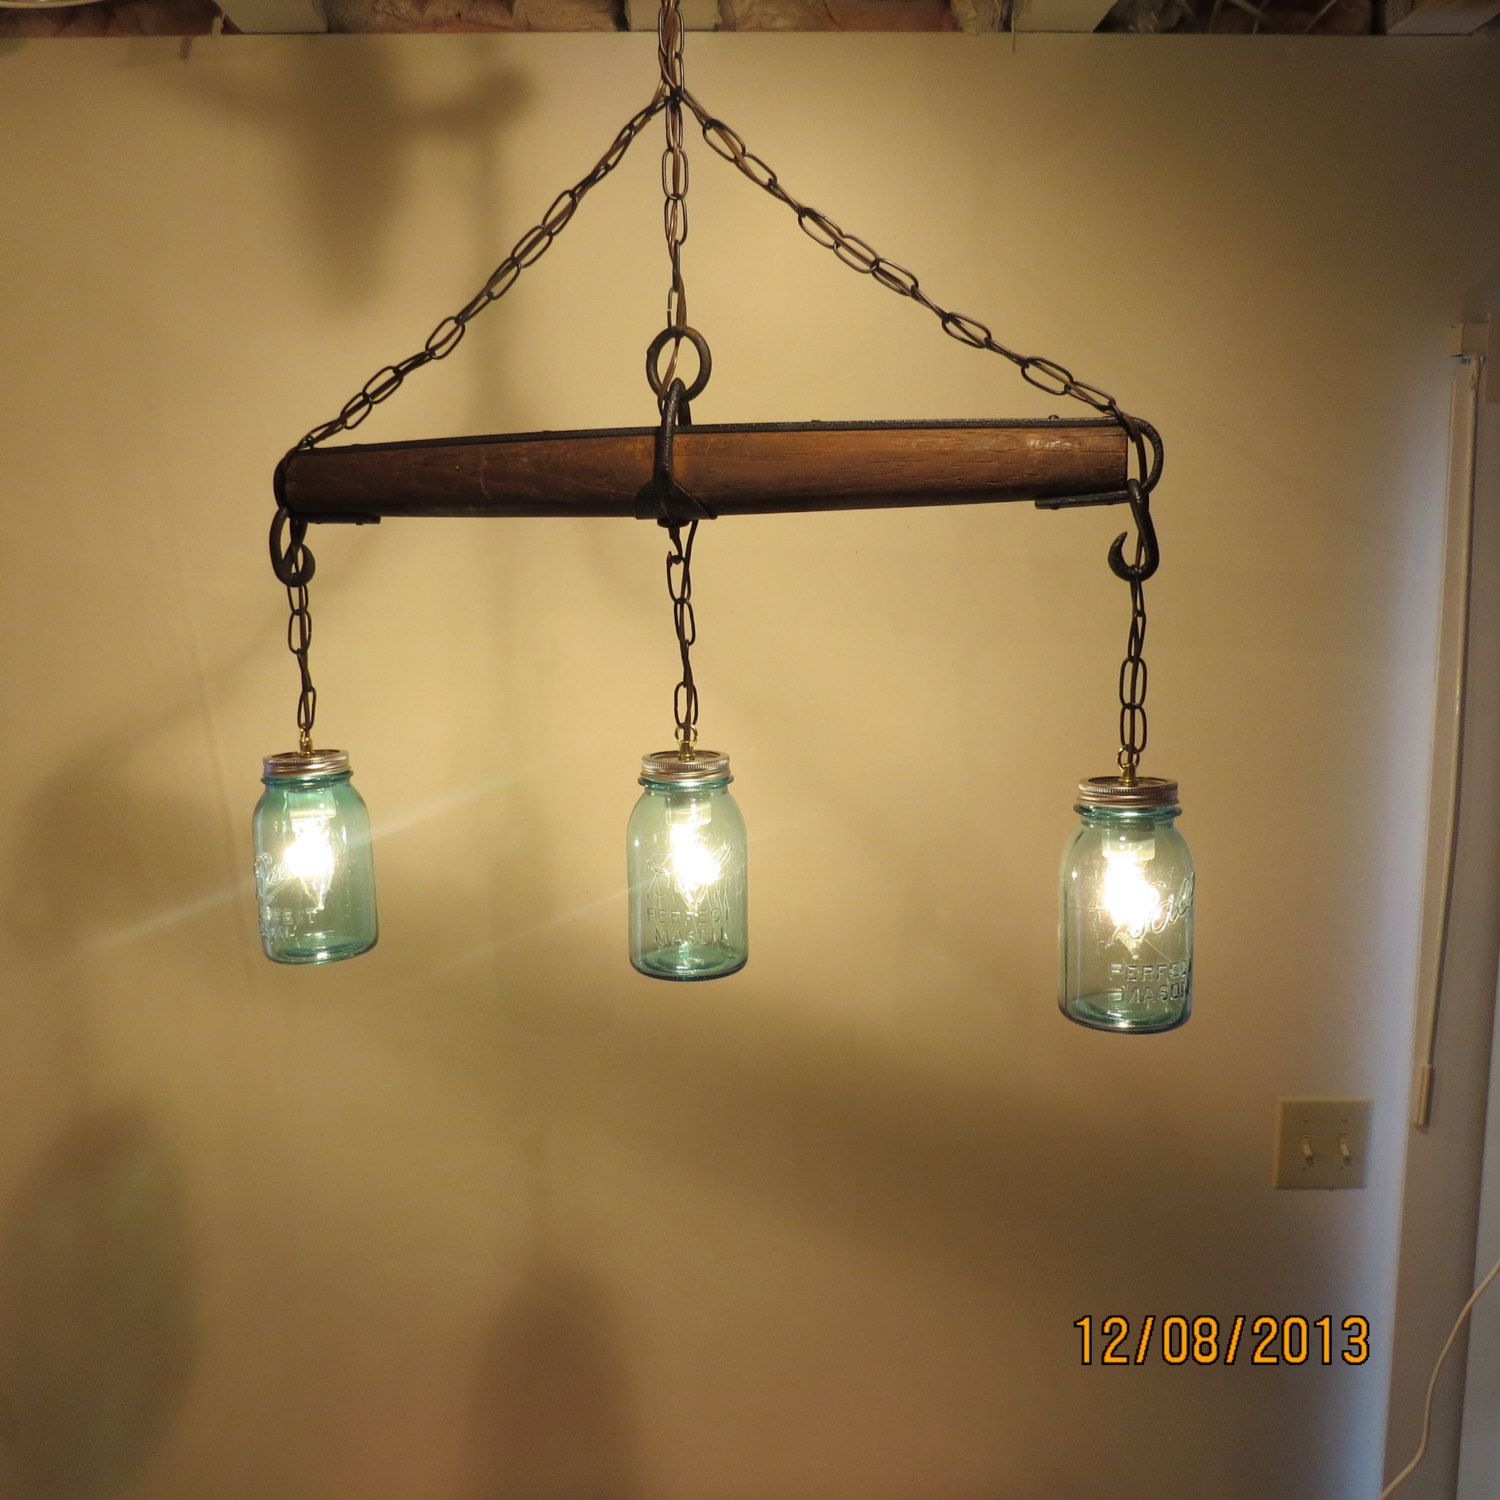 Just Reduced!! Rustic Handmade 3 Bulb Hanging Light